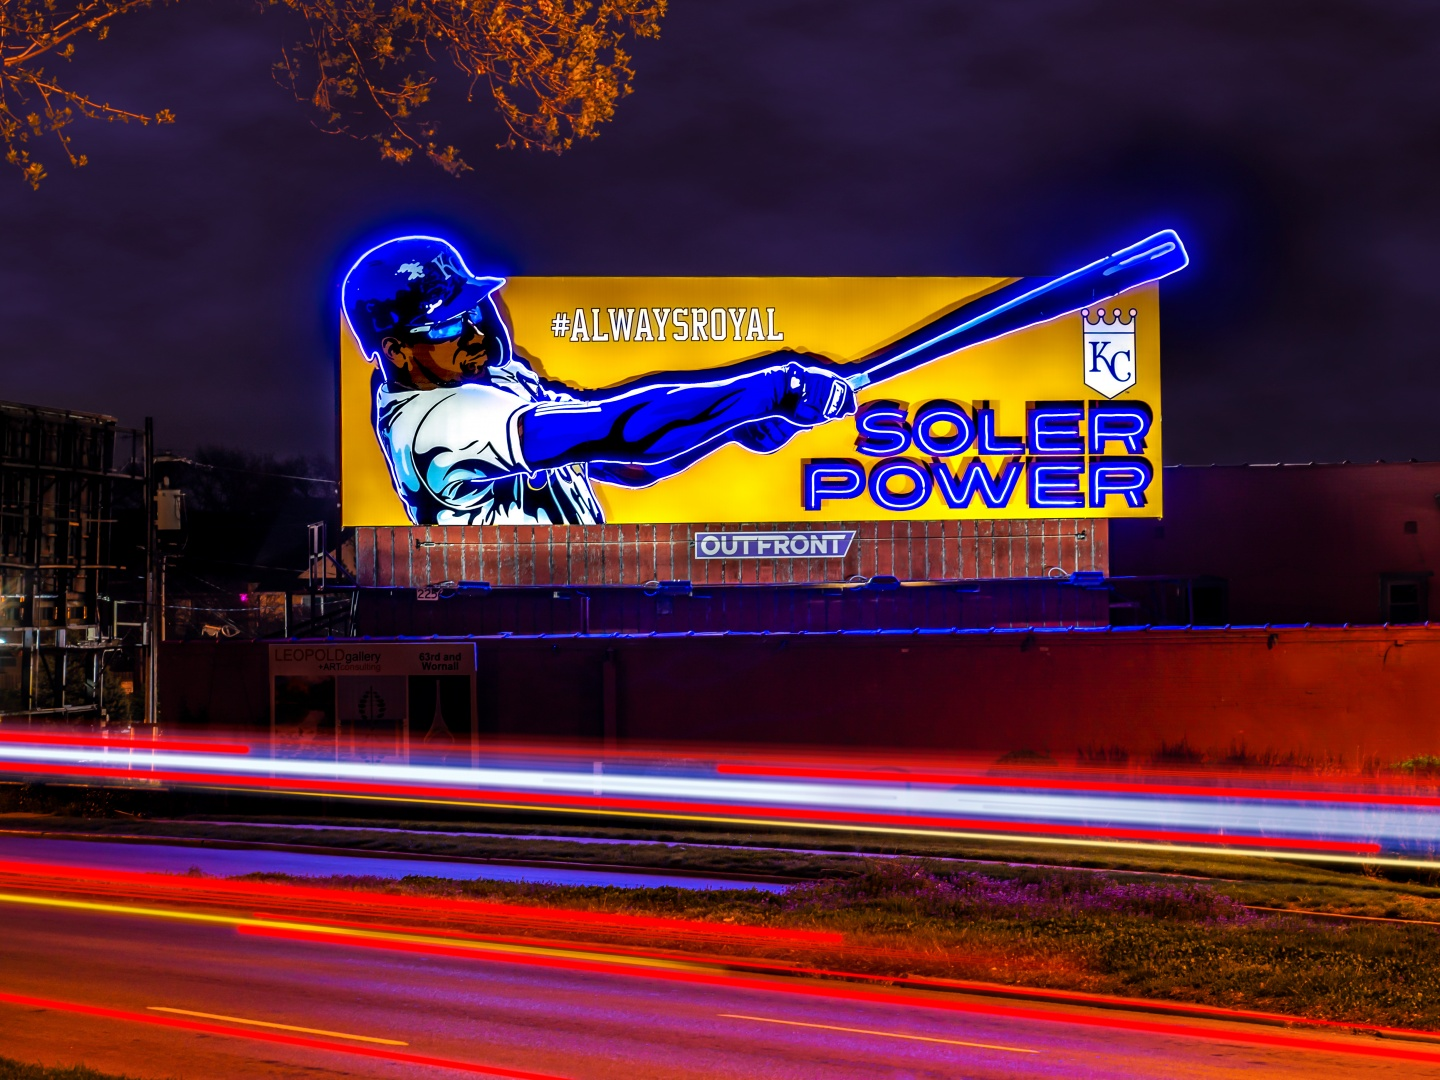 Soler Power Thumbnail